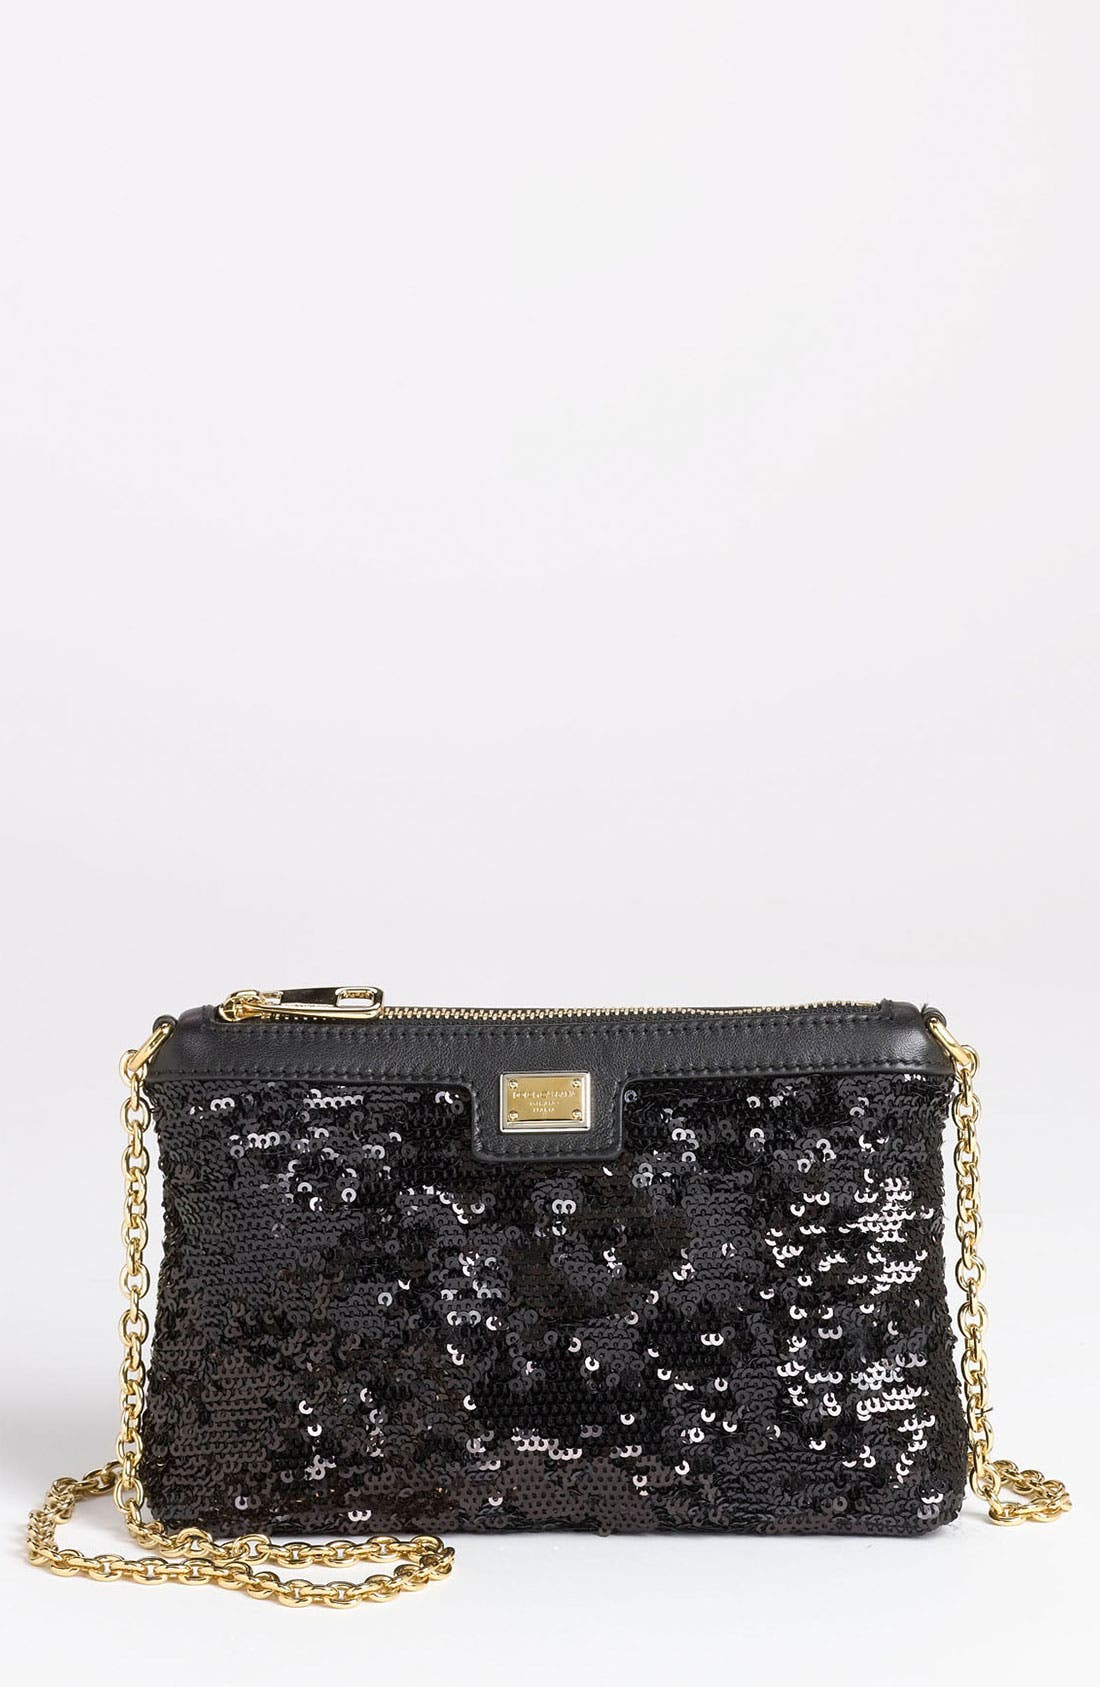 Alternate Image 1 Selected - Dolce&Gabbana 'Miss Mini' Sequin Crossbody Bag